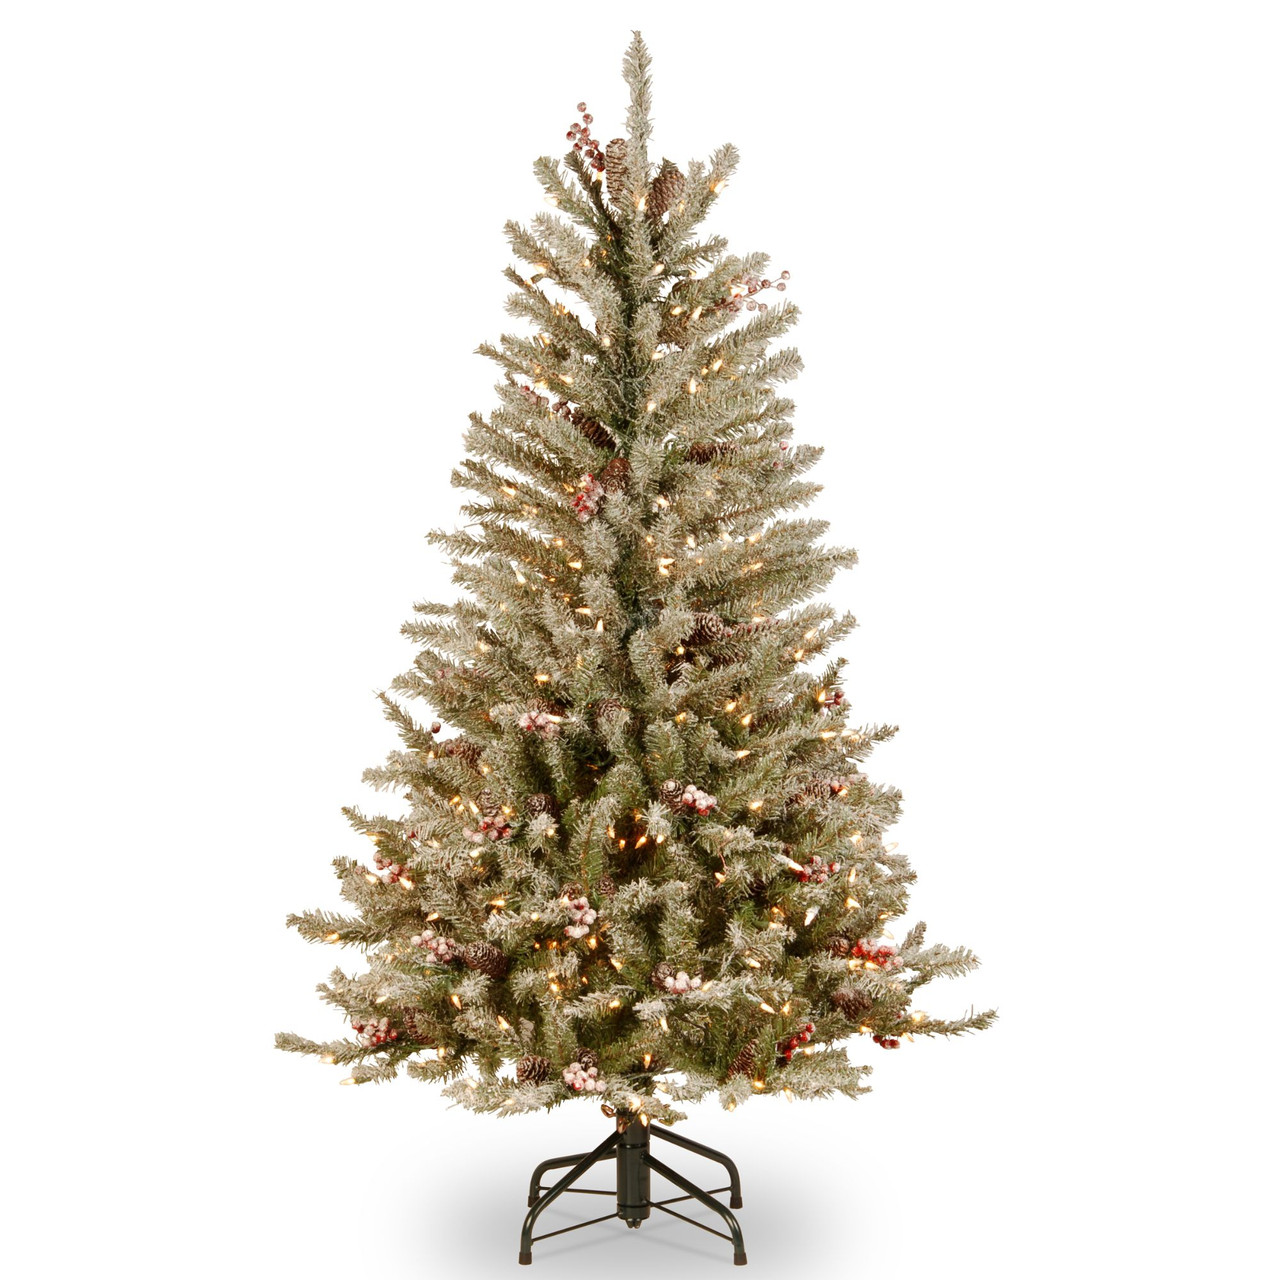 Dunhill Fir Christmas Tree.4 5 Dunhill Fir Slim Artificial Christmas Tree Clear Lights 31422993